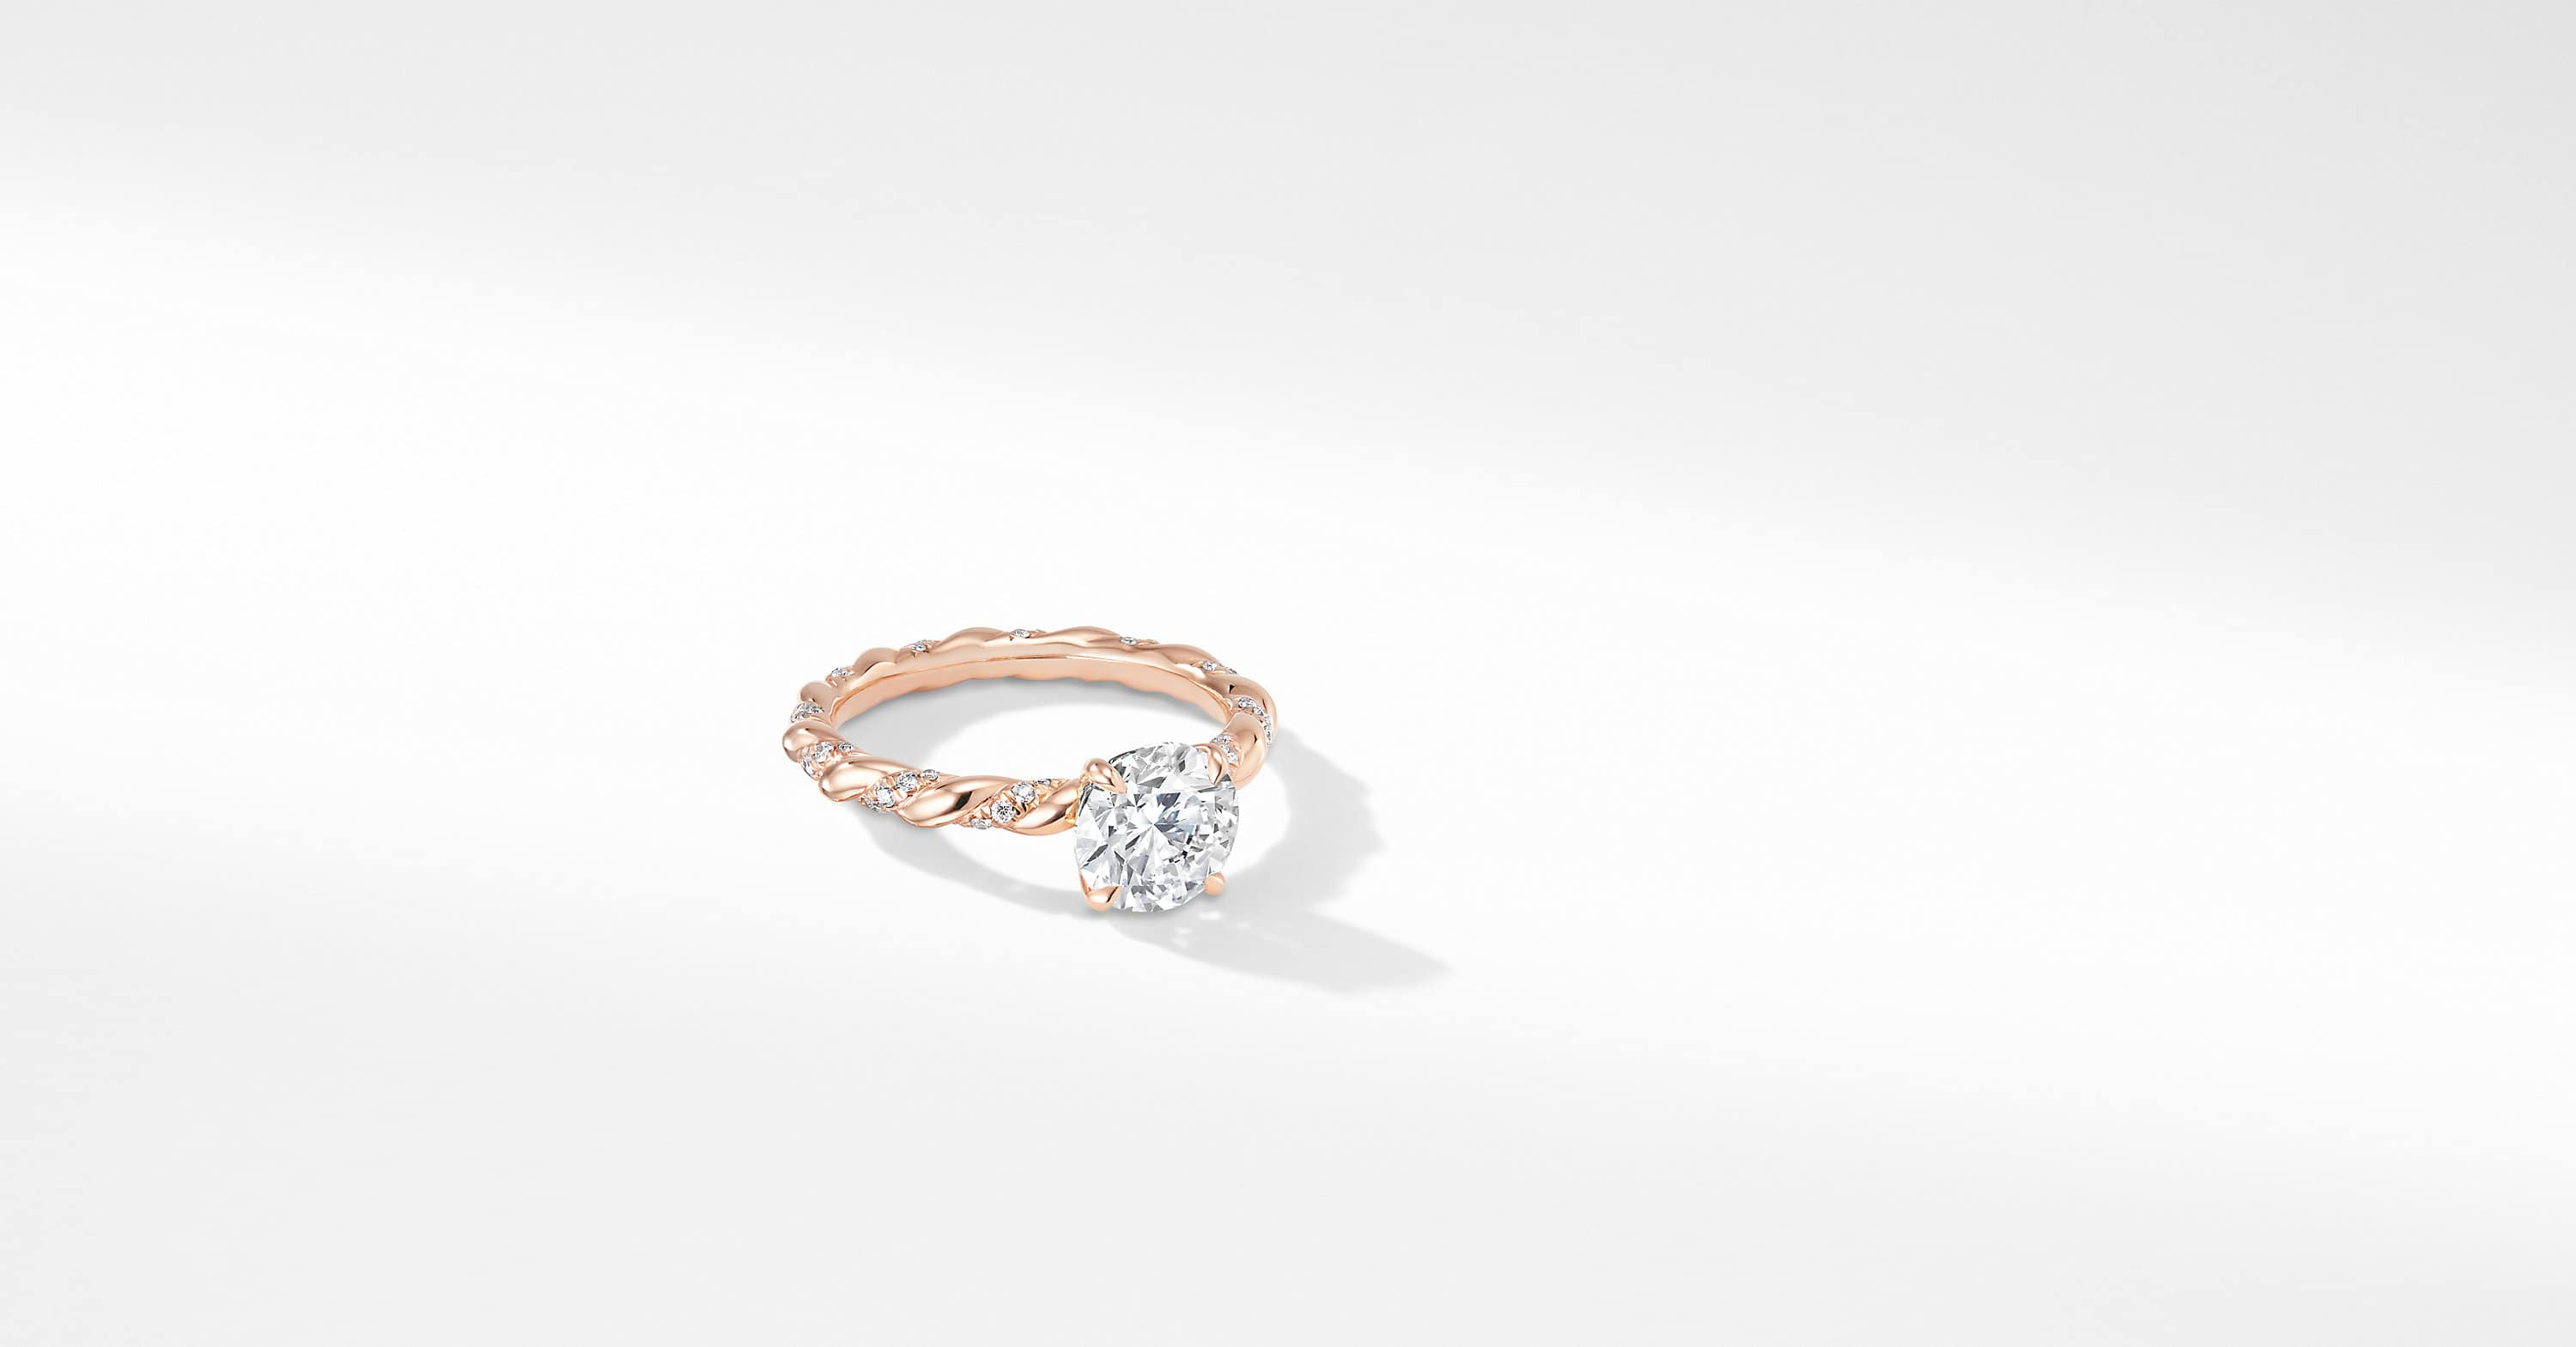 DY Unity Pavé Engagement Ring in 18K Rose Gold, Round